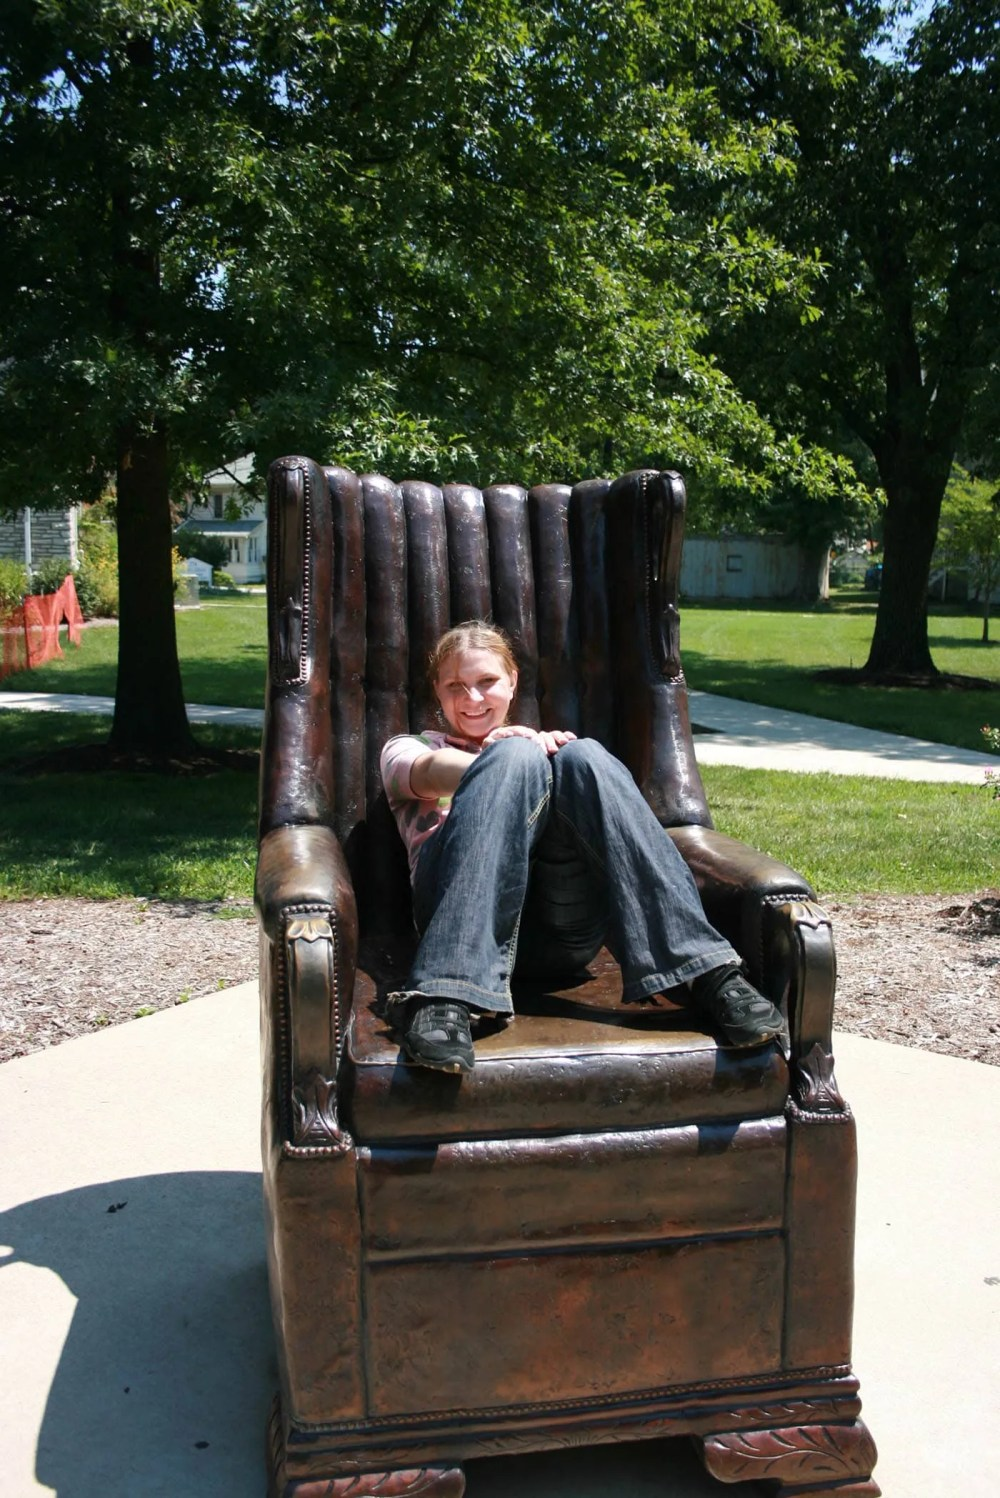 Val sits on the replica of Robert Wadlow's chair in Alton, Illinois. Robert Wadlow was the World's Tallest Man.